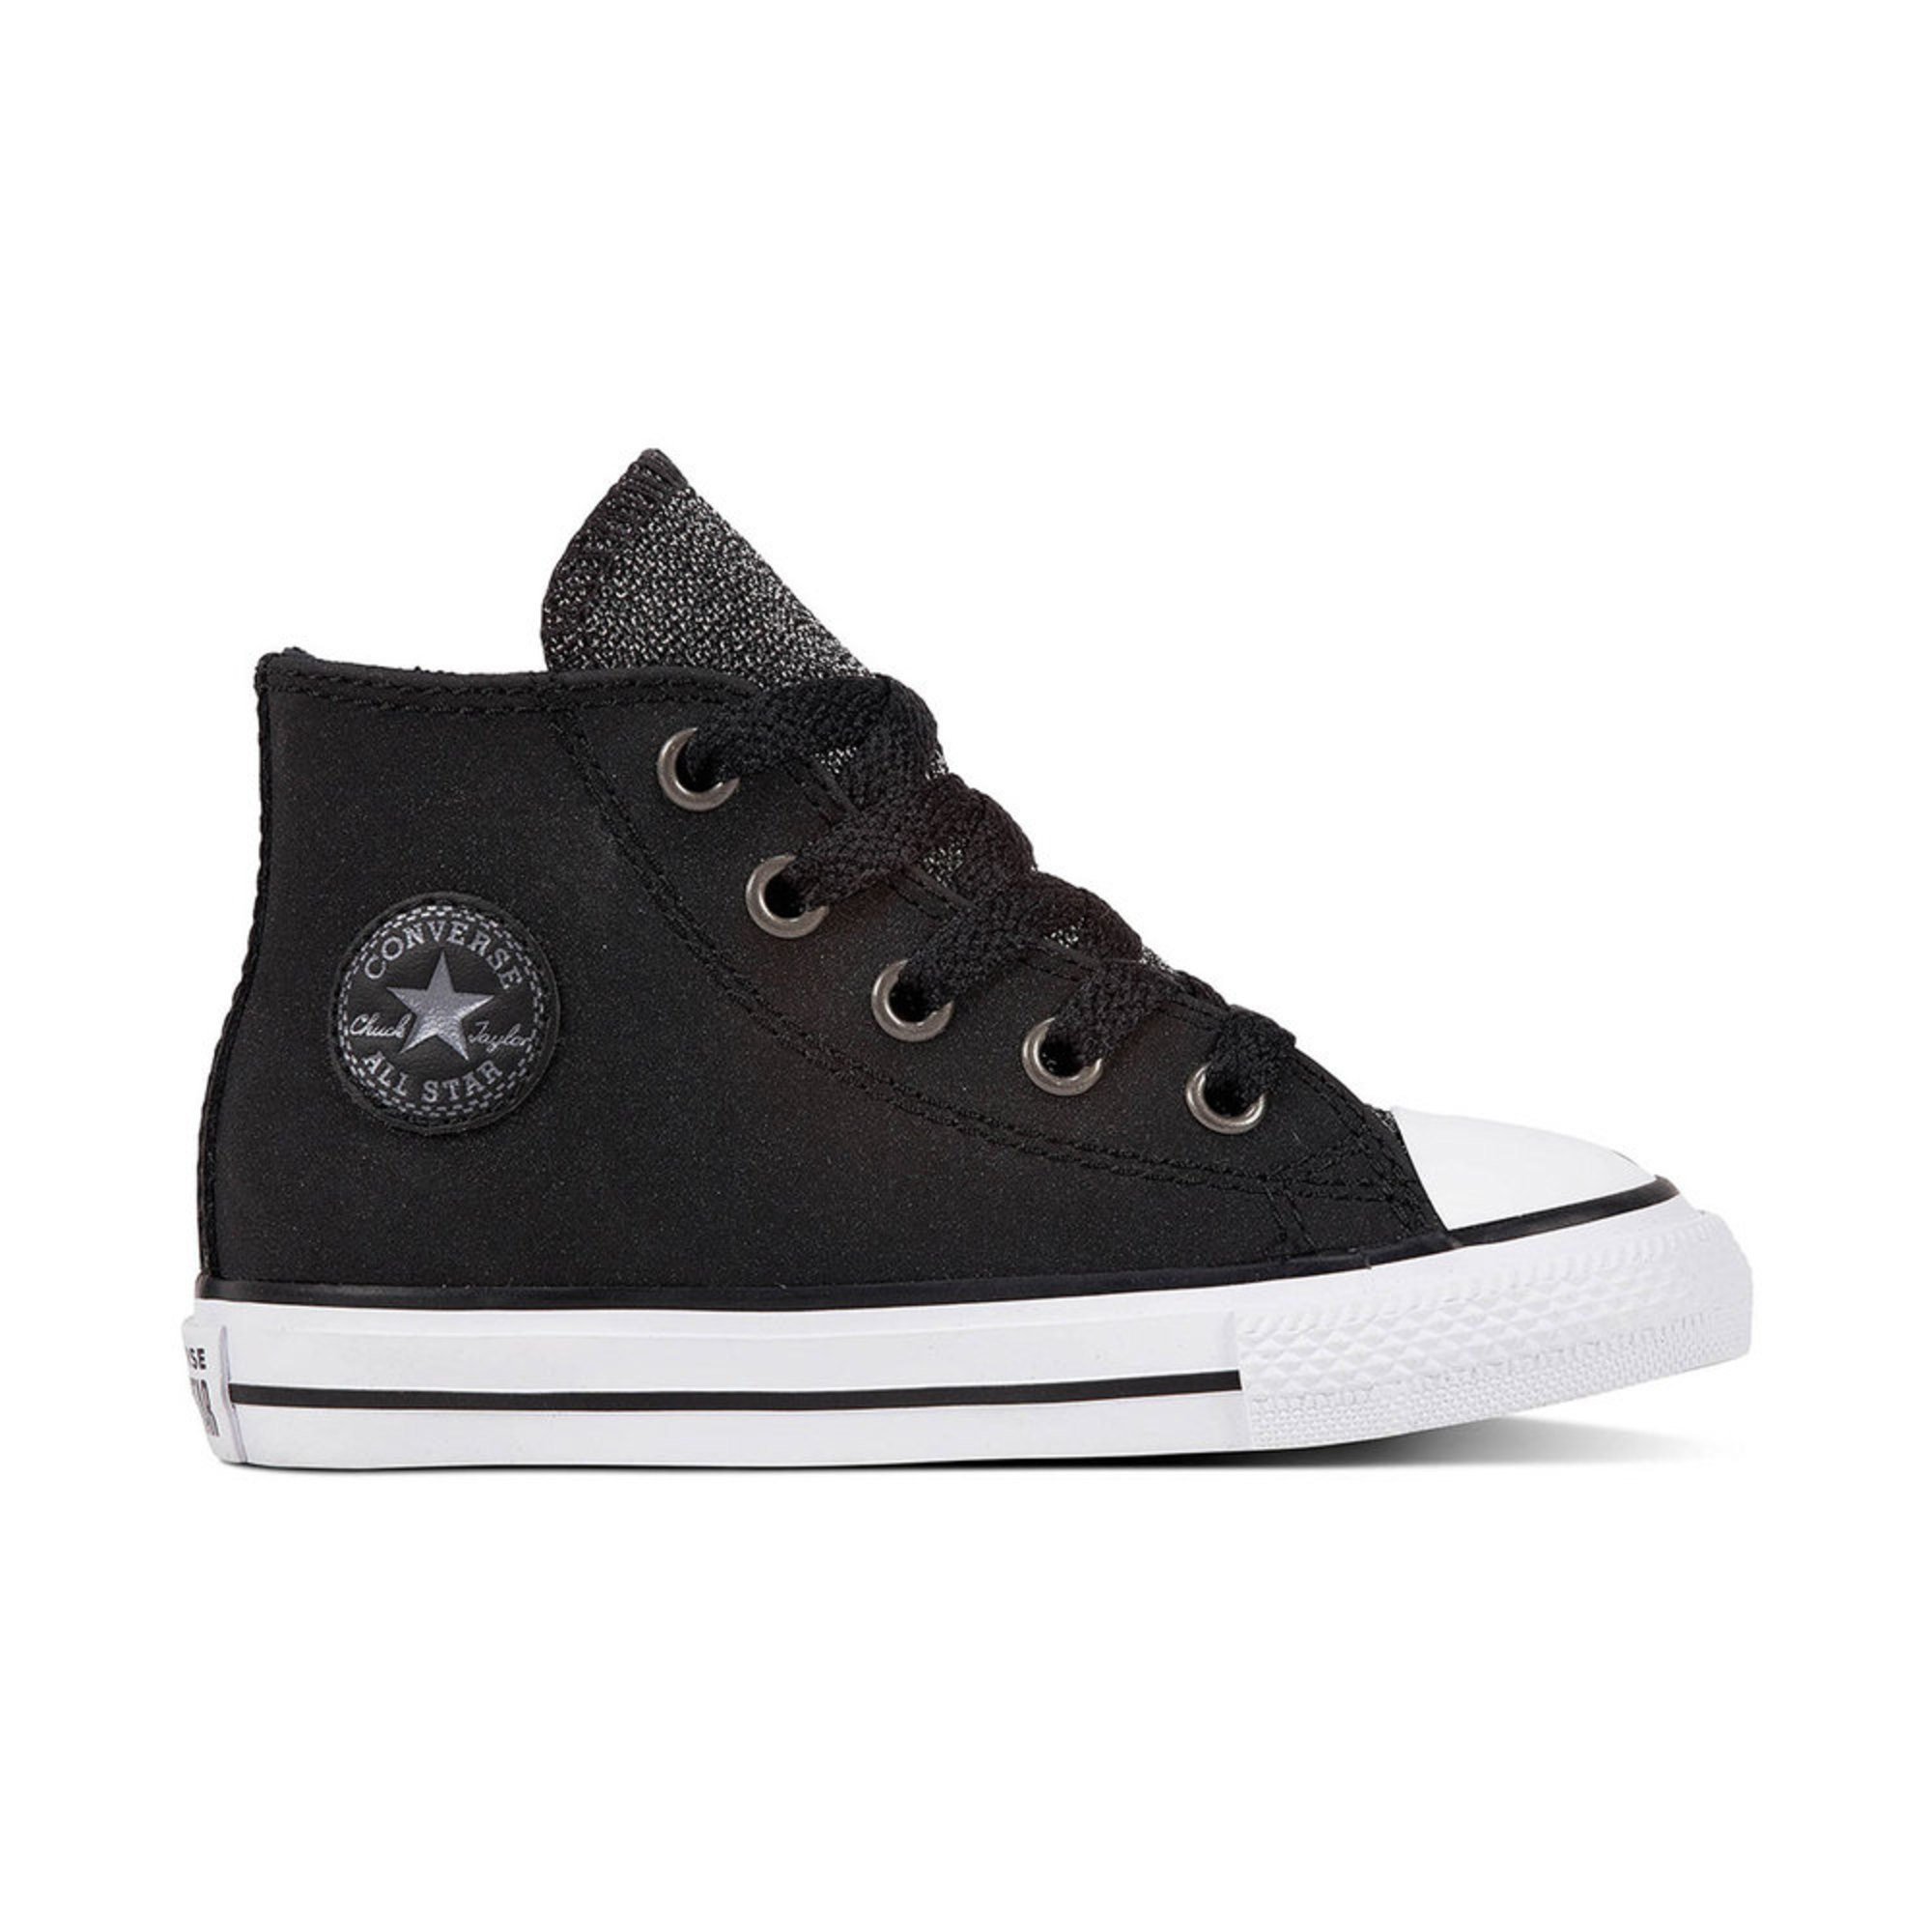 8705ba386148 Converse Girls Chuck Taylor All Star Glitter Hi Top Basketball Shoe (Infant Toddler).  MSRP.  40.00. Product Rating 0 Based on 0 reviews. 001